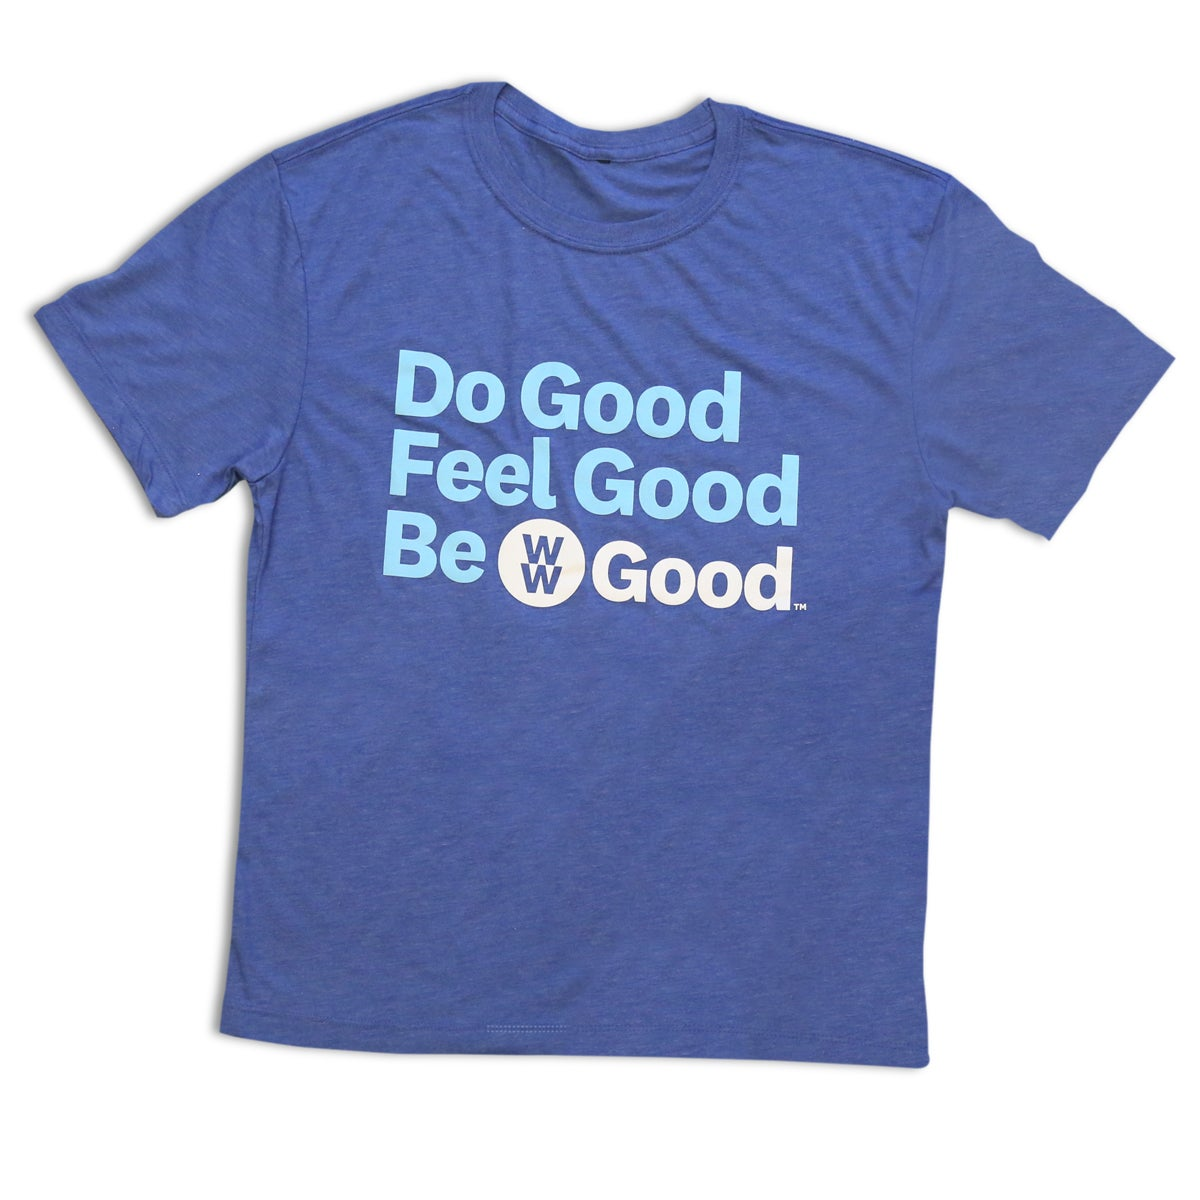 WW Good Tee (3XL)